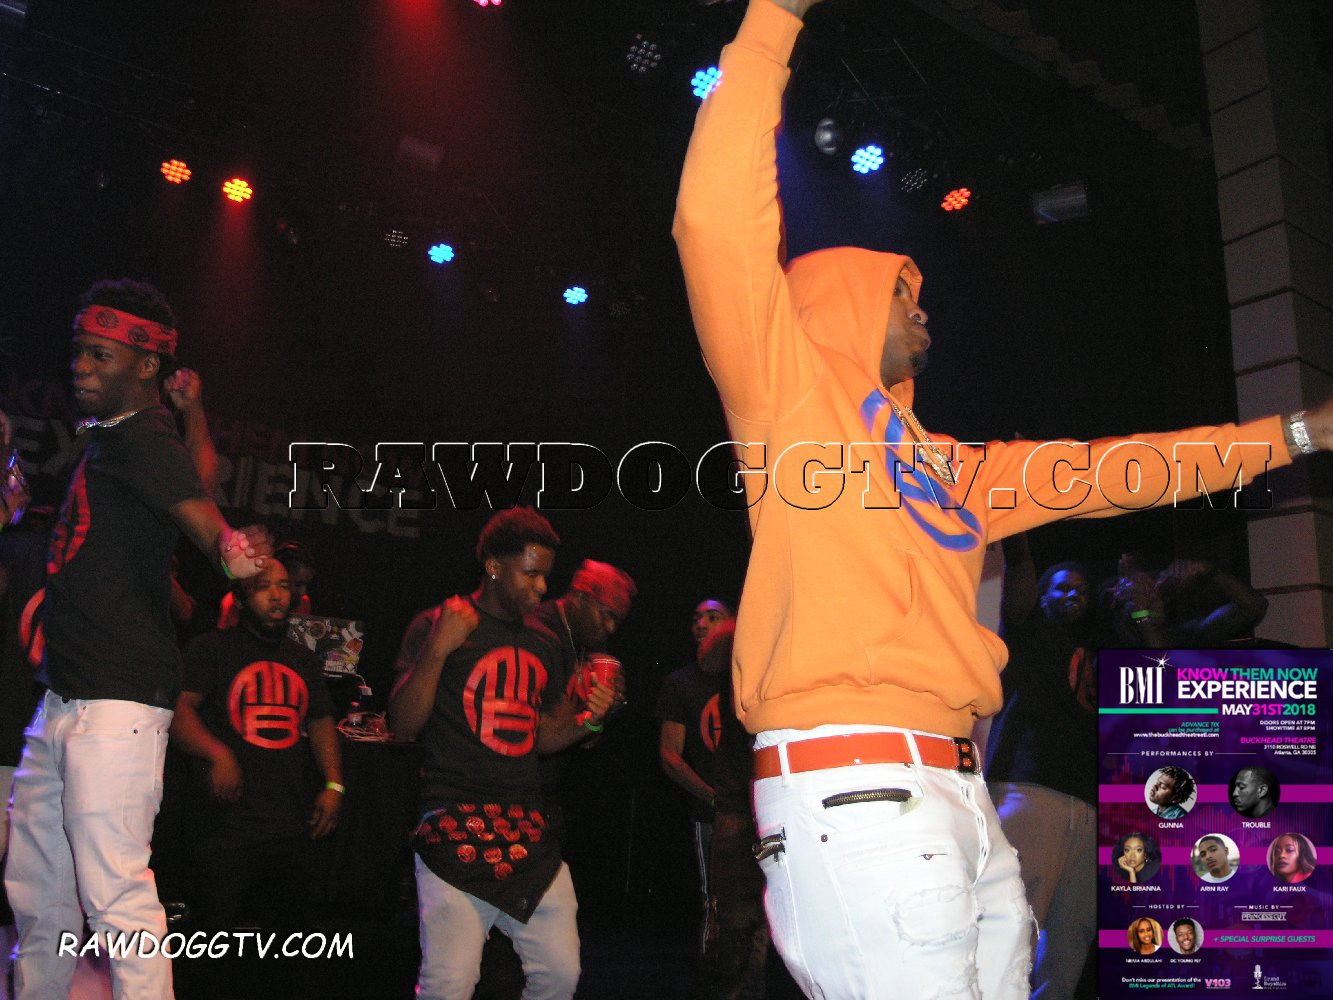 BMI Know Them Now Experience Atlanta Photos RAWDOGGTV.COM 305-490-2182 (1)